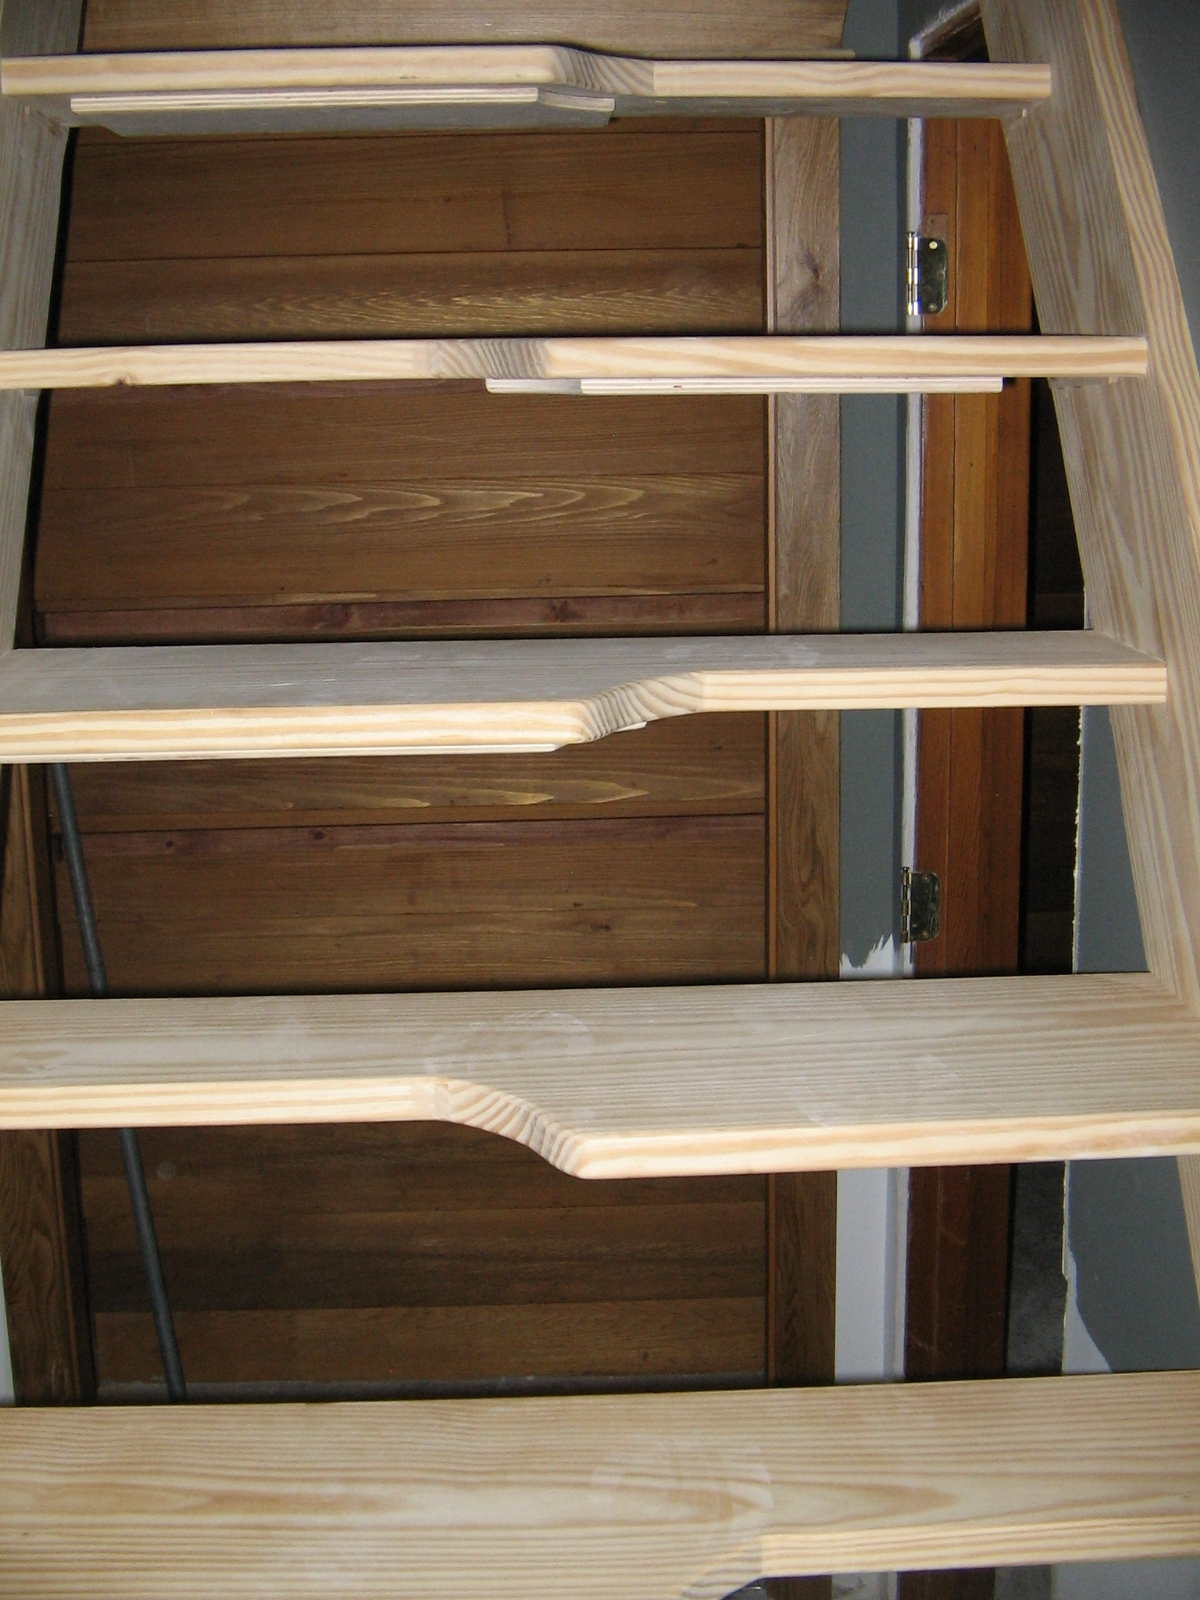 Gallery 7 Alternating Tread Stairs Nmwoodworking Com   Wood Alternating Tread Stair   Modern Staircase   Stair Case   Thomas Jefferson   Spiral Staircase   Tread Depth